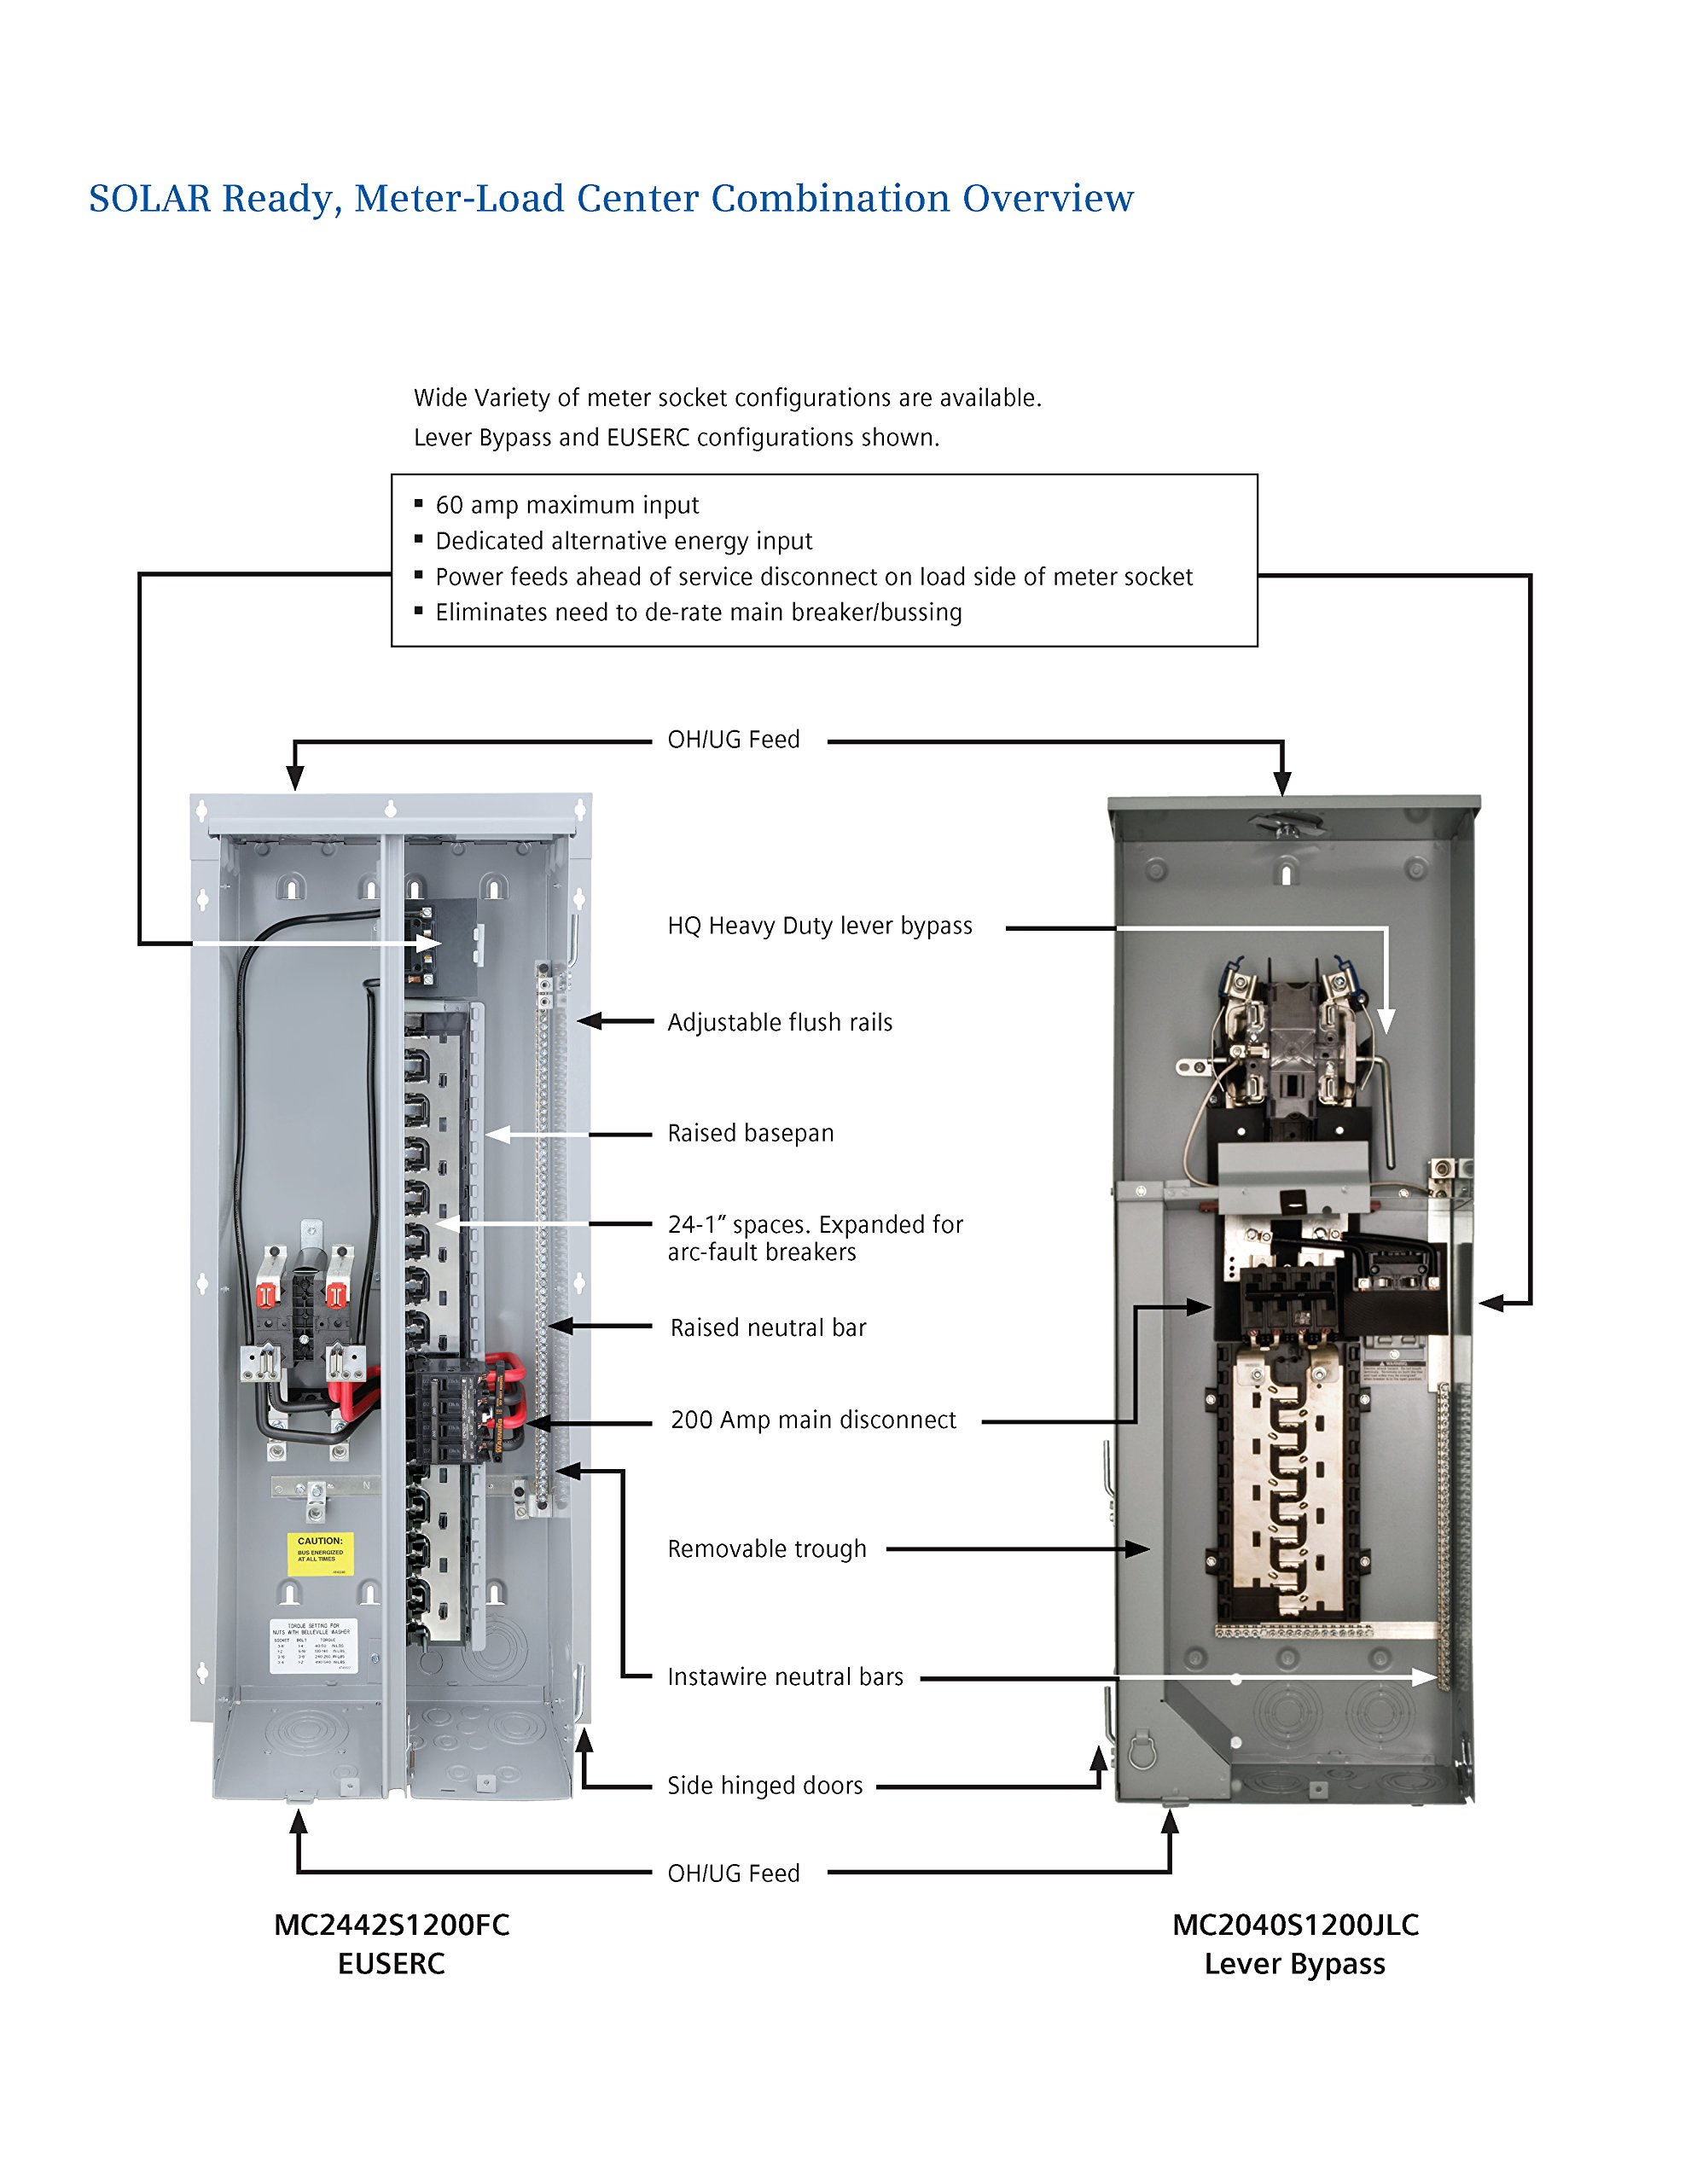 42 Circuit Siemens MC2442S1200FC Meter-Load Center Combination Flush Mount Solar Ready 24 Space 200-Amp